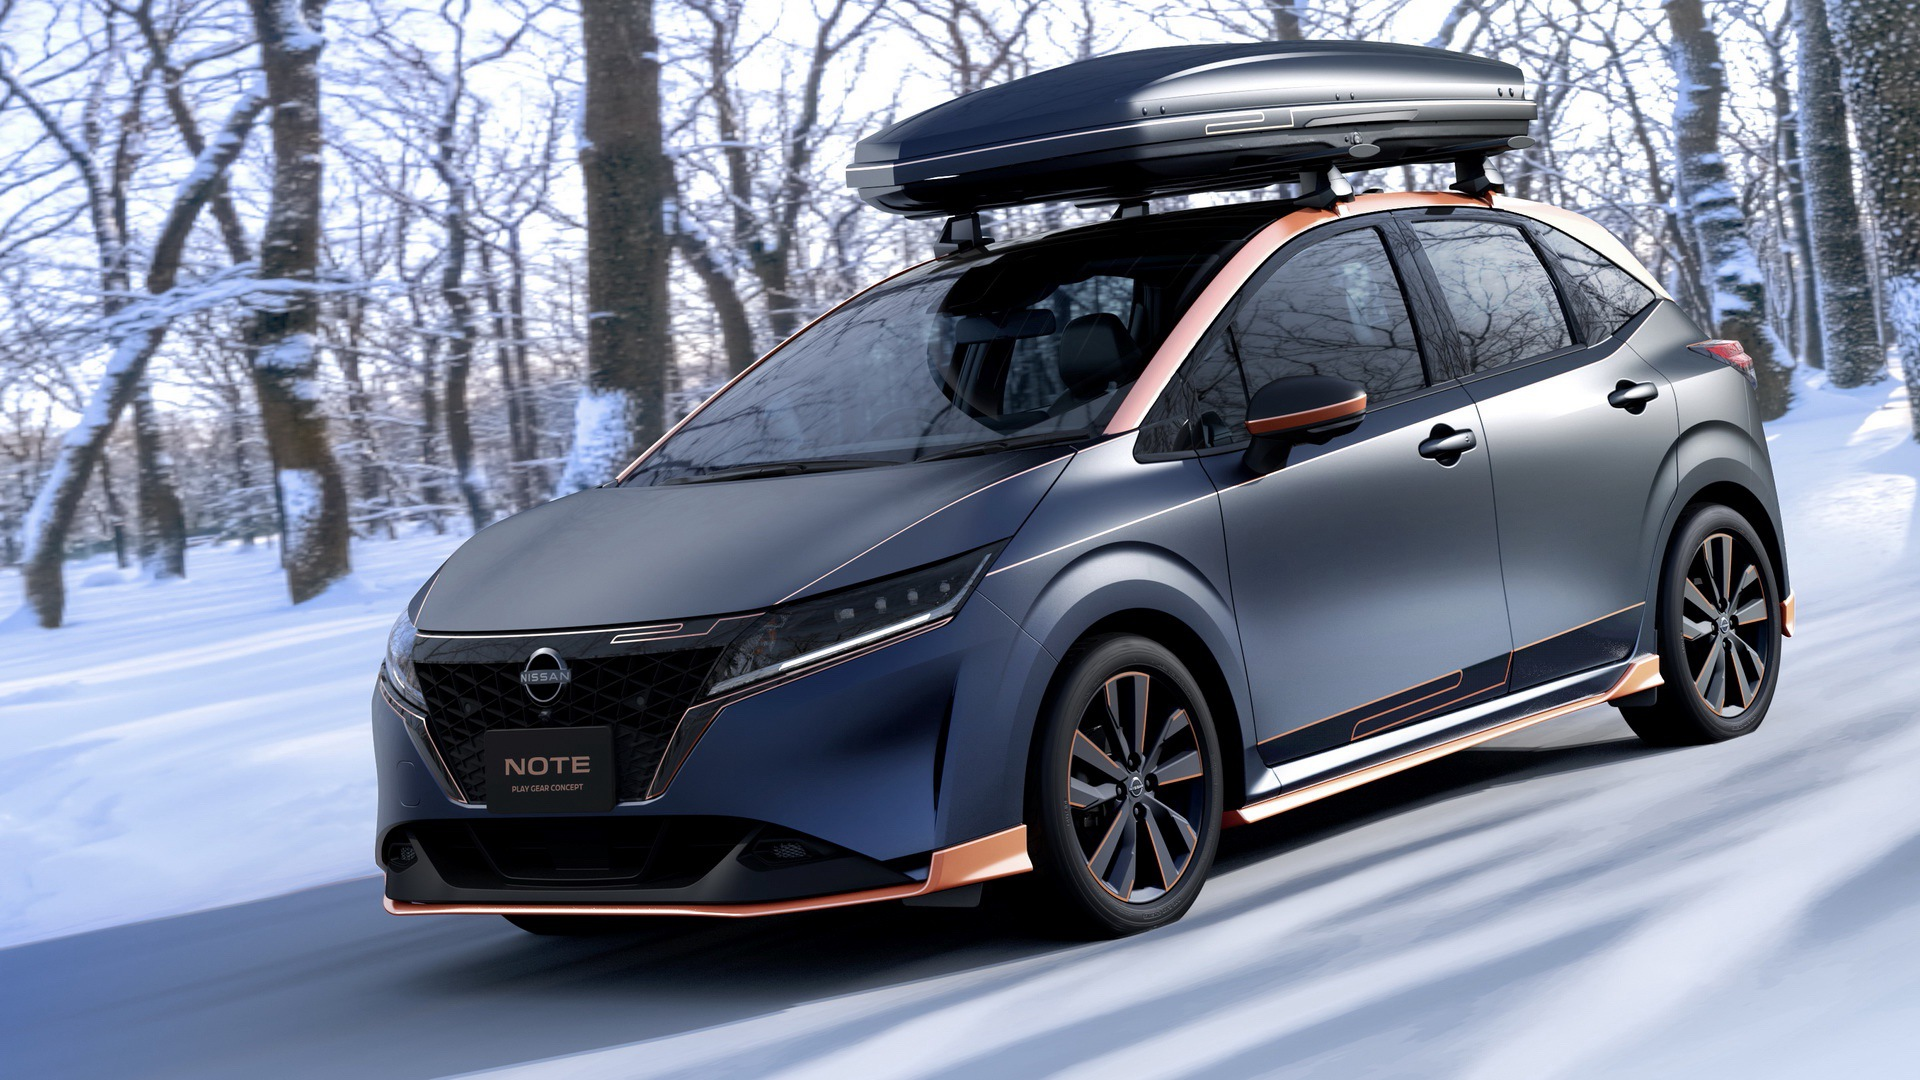 nissan-note-play-gear-concept-tokyo-2021-1